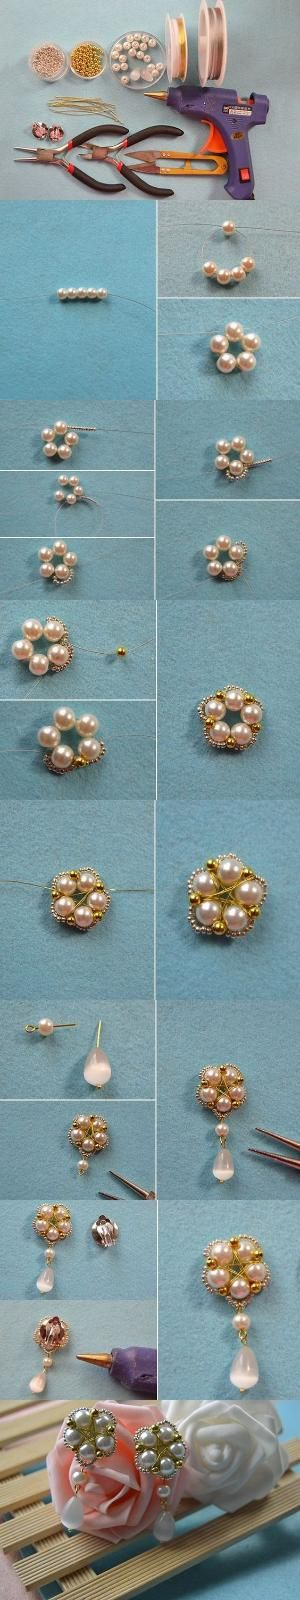 Tutorial on How to Make Earrings with Beads and Wires-A Pair of Flower Shaped Earrings for You from LC.Pandahall.com #pandahall | Pinterest by Jersica